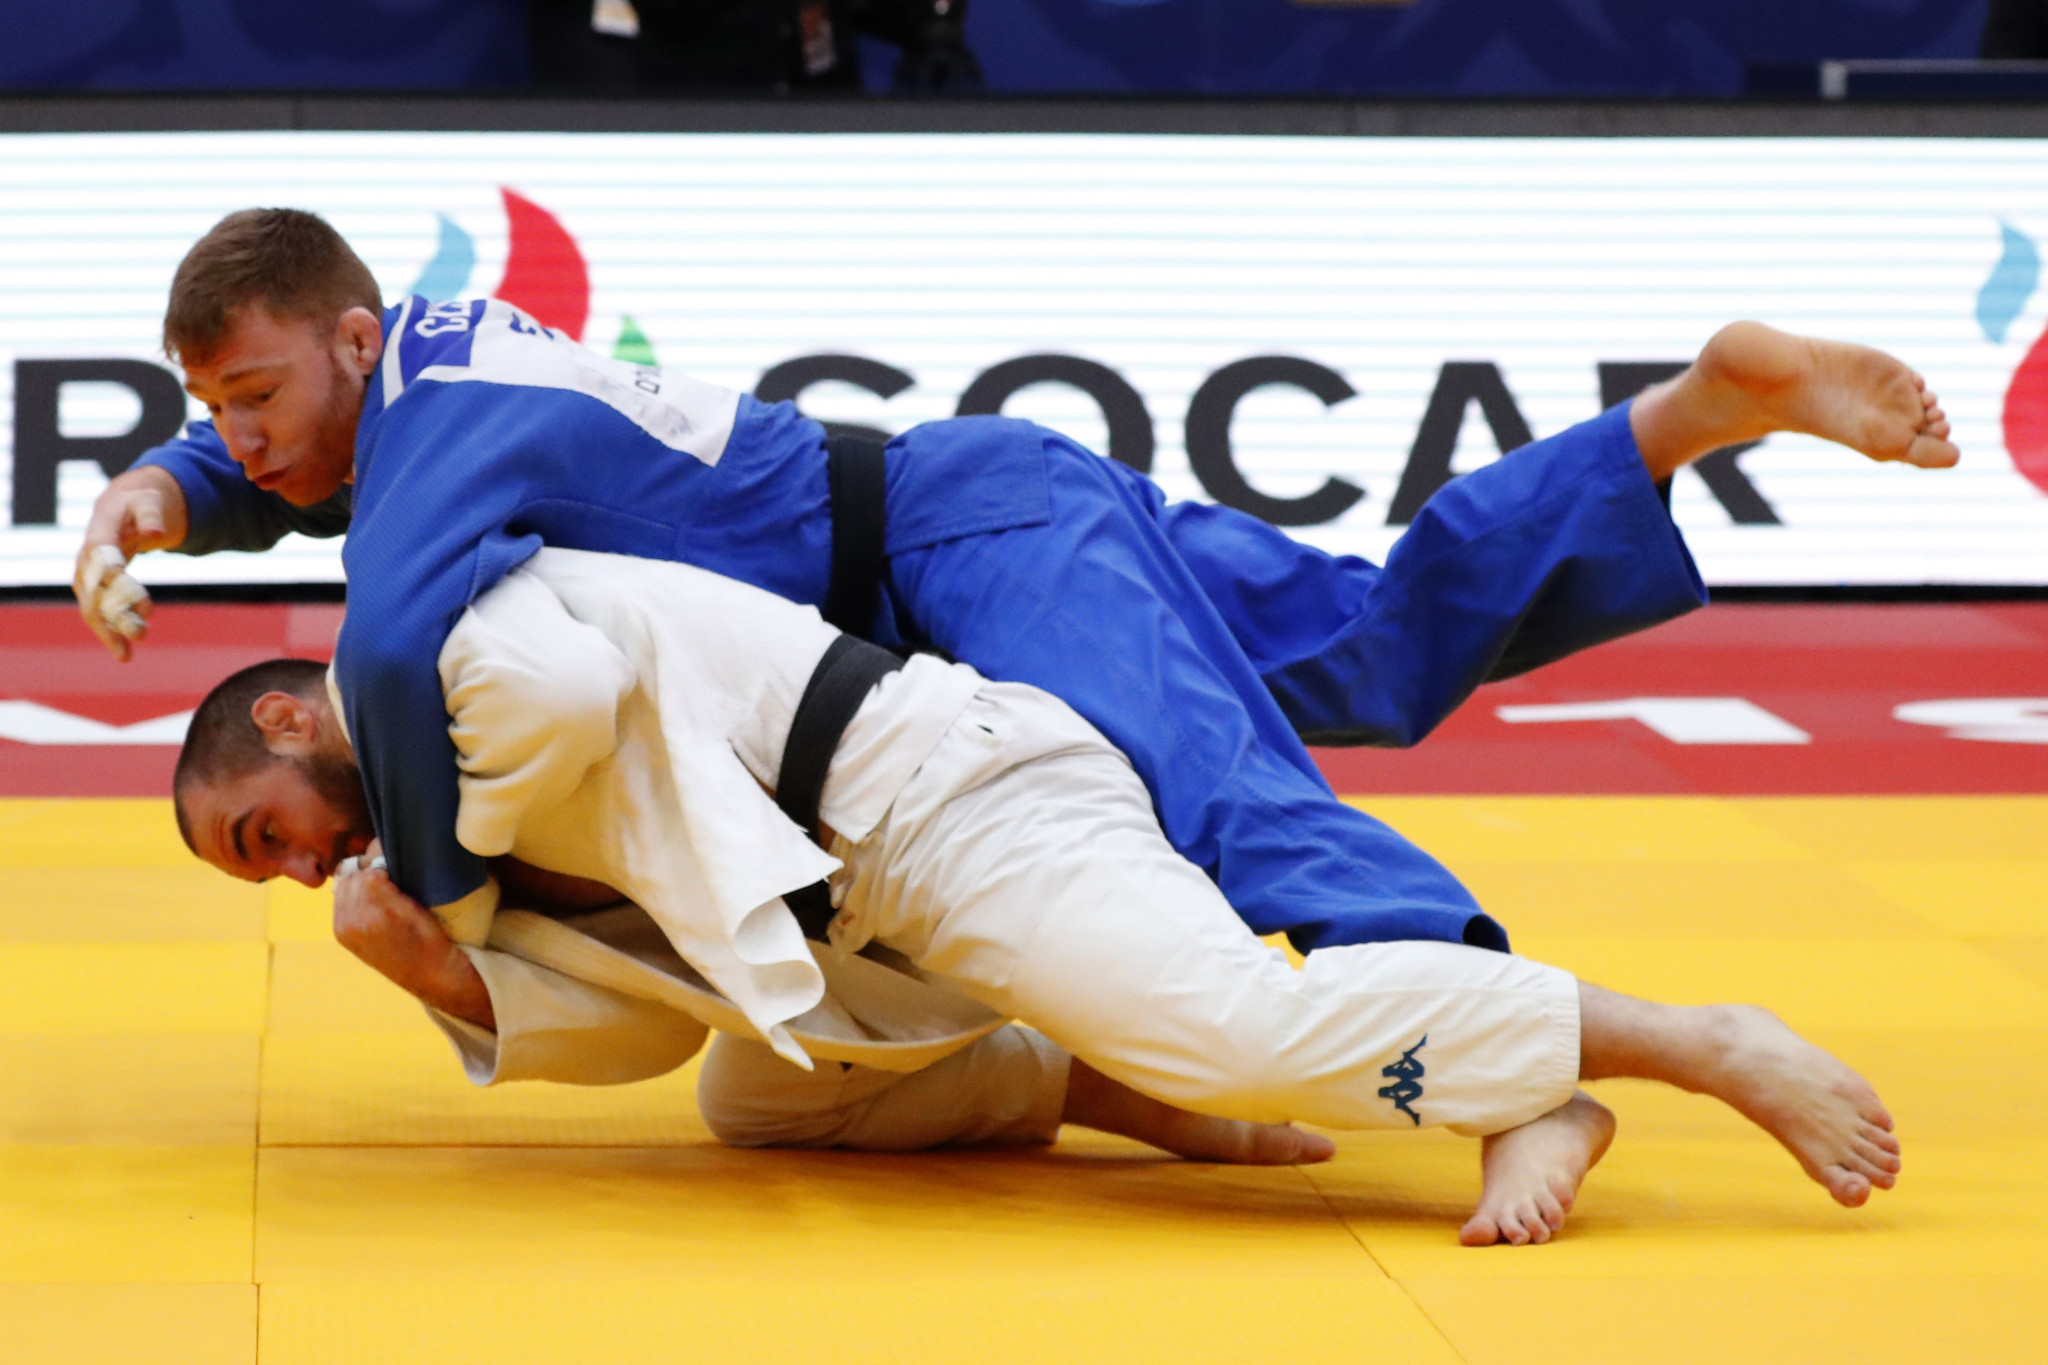 Entry open for first Commonwealth Judo Championships to be held in England